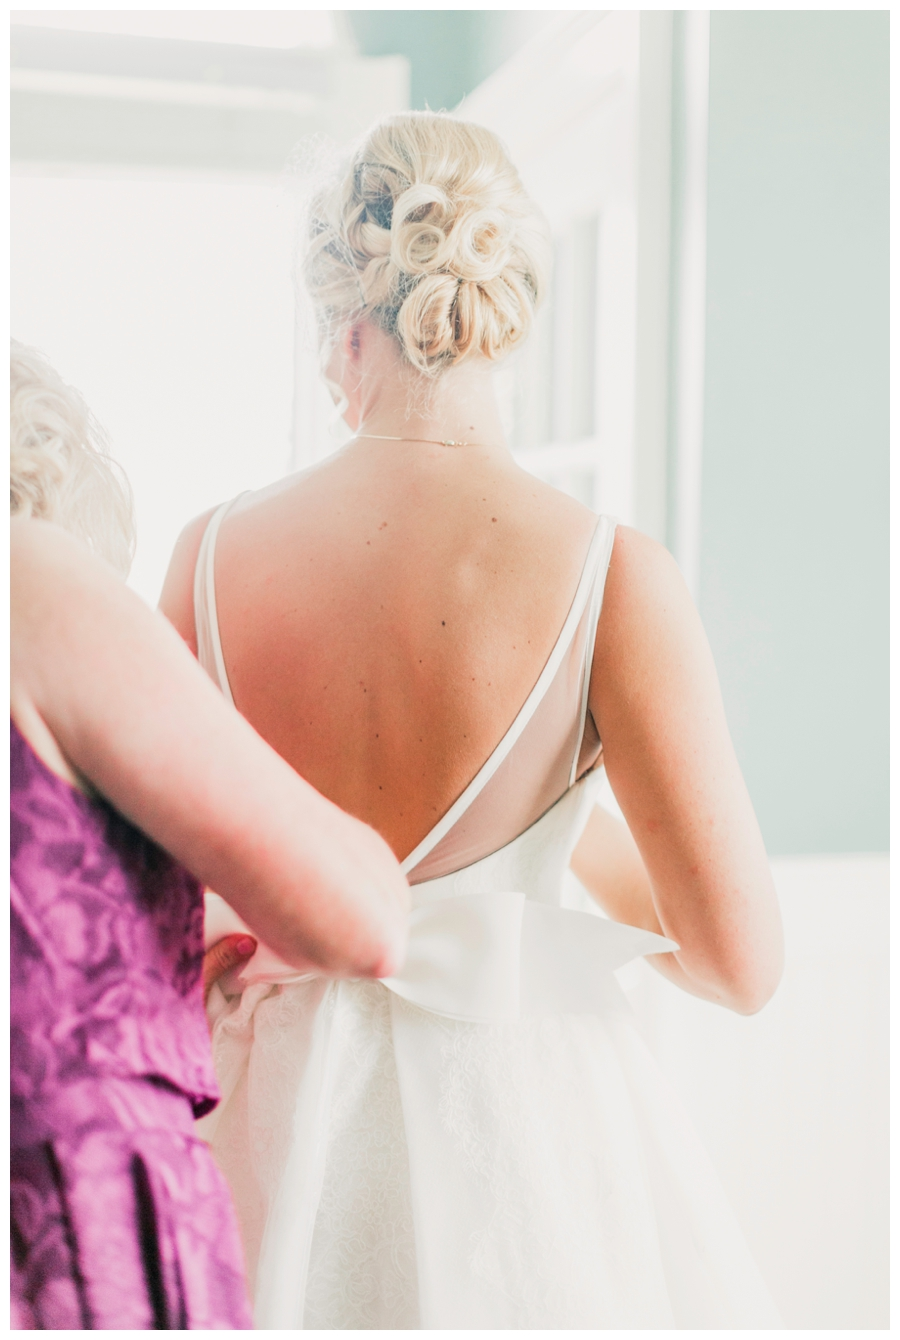 Light and Airy Photos of the bride in front of a window_0014.jpg